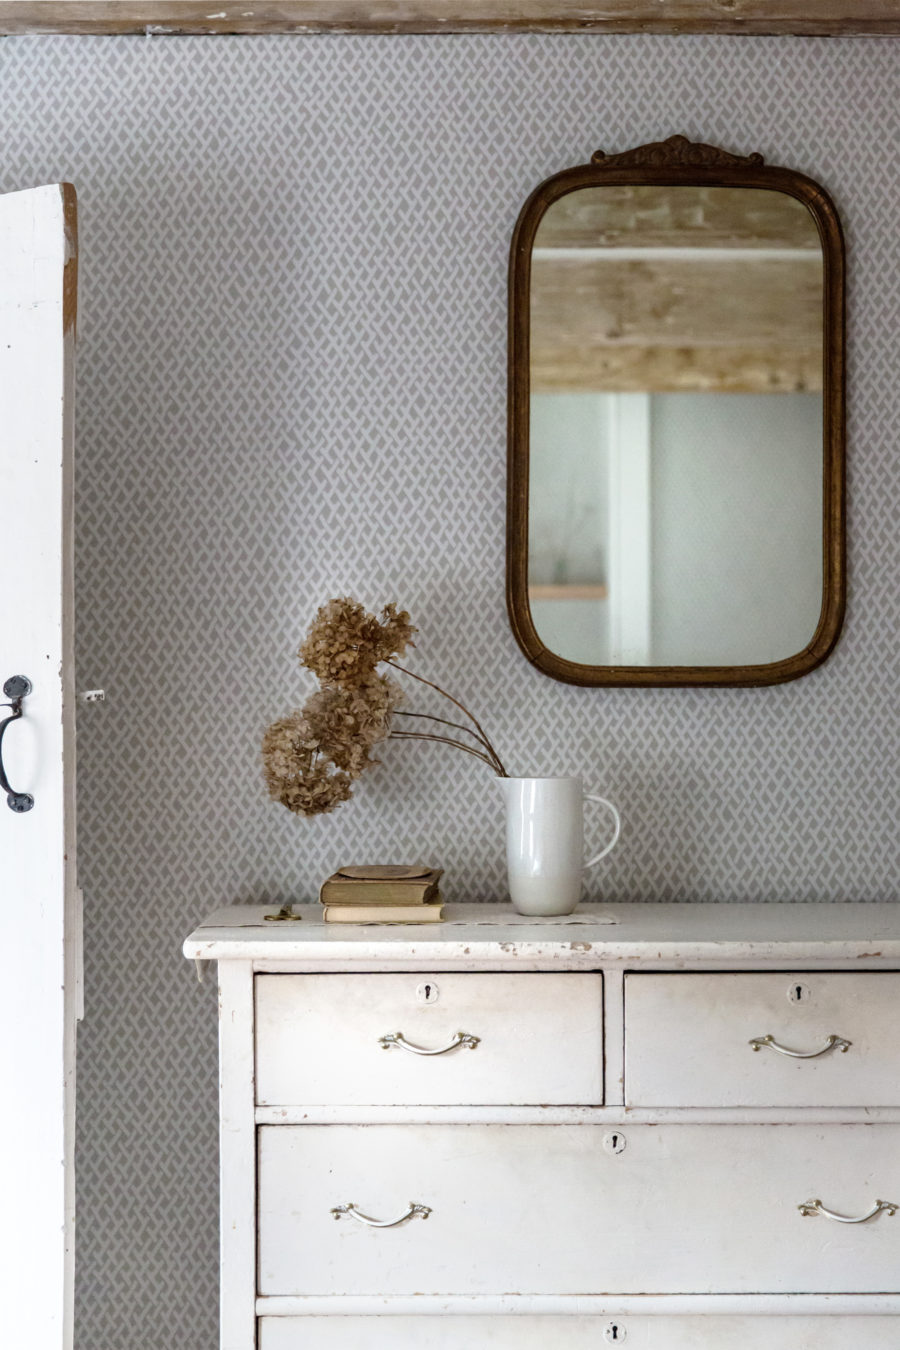 Jerset-Ice-Cream-Co-Old-Chatham-House-Remodelista-guest-bdrm-mirror